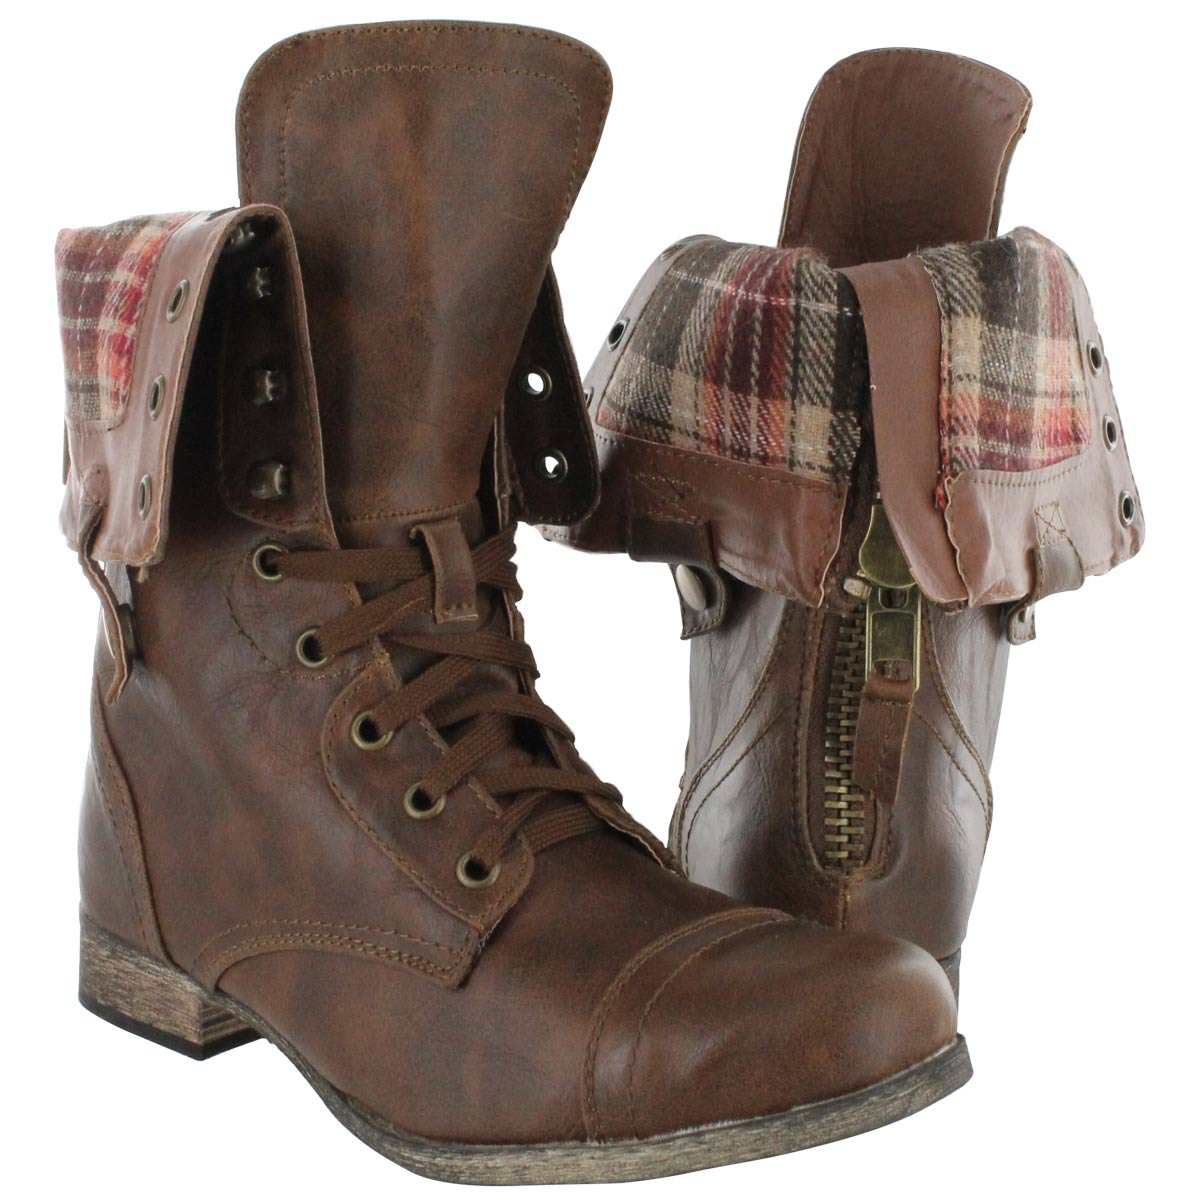 Black Combat Boots Women Fold Over Fold over combat boots